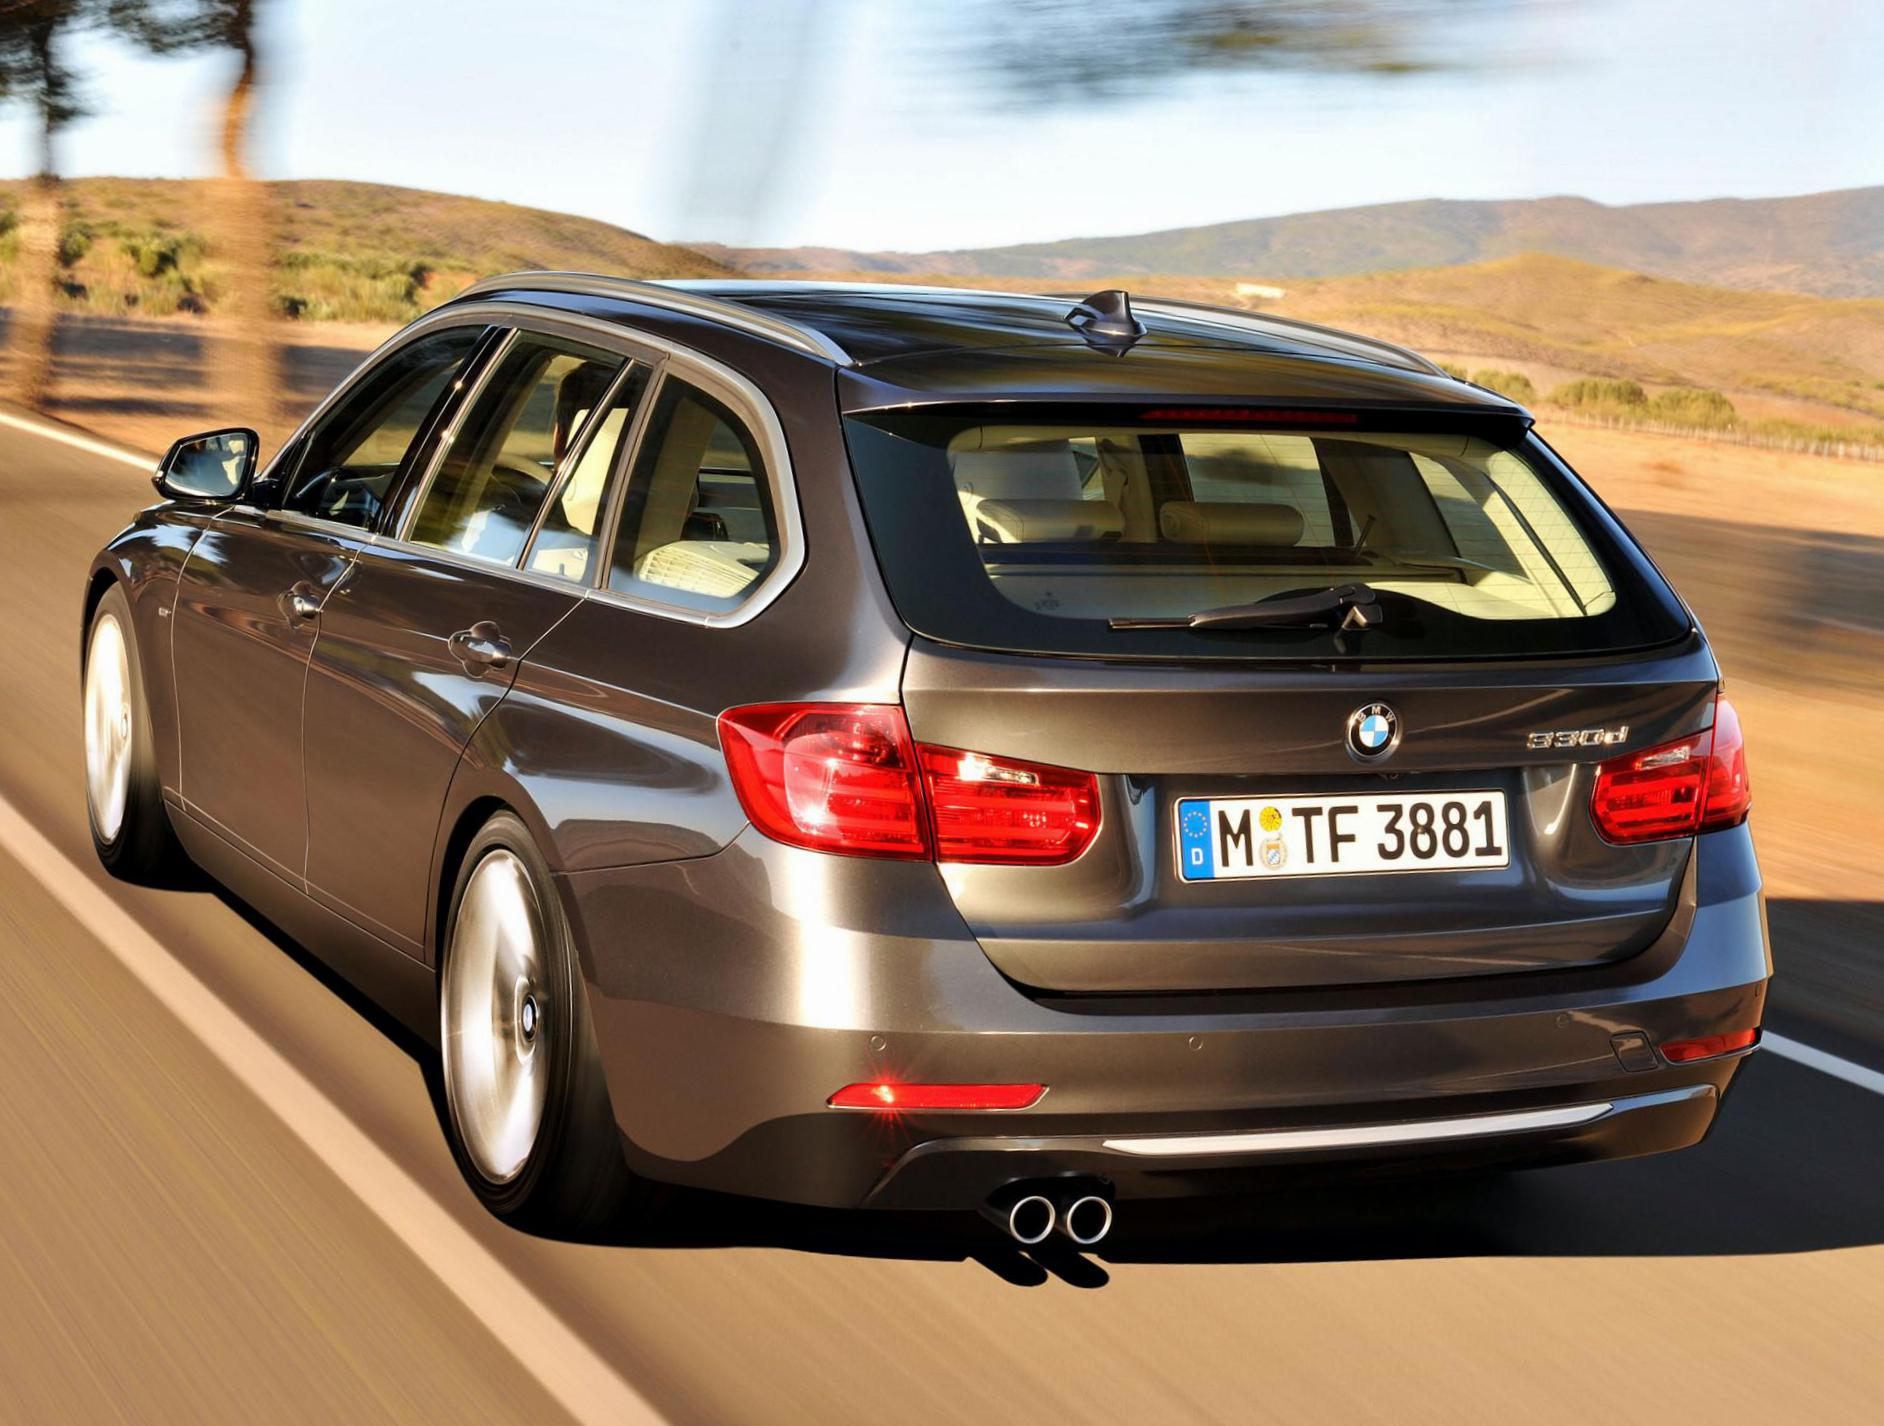 3 Series Touring (F31) BMW reviews suv